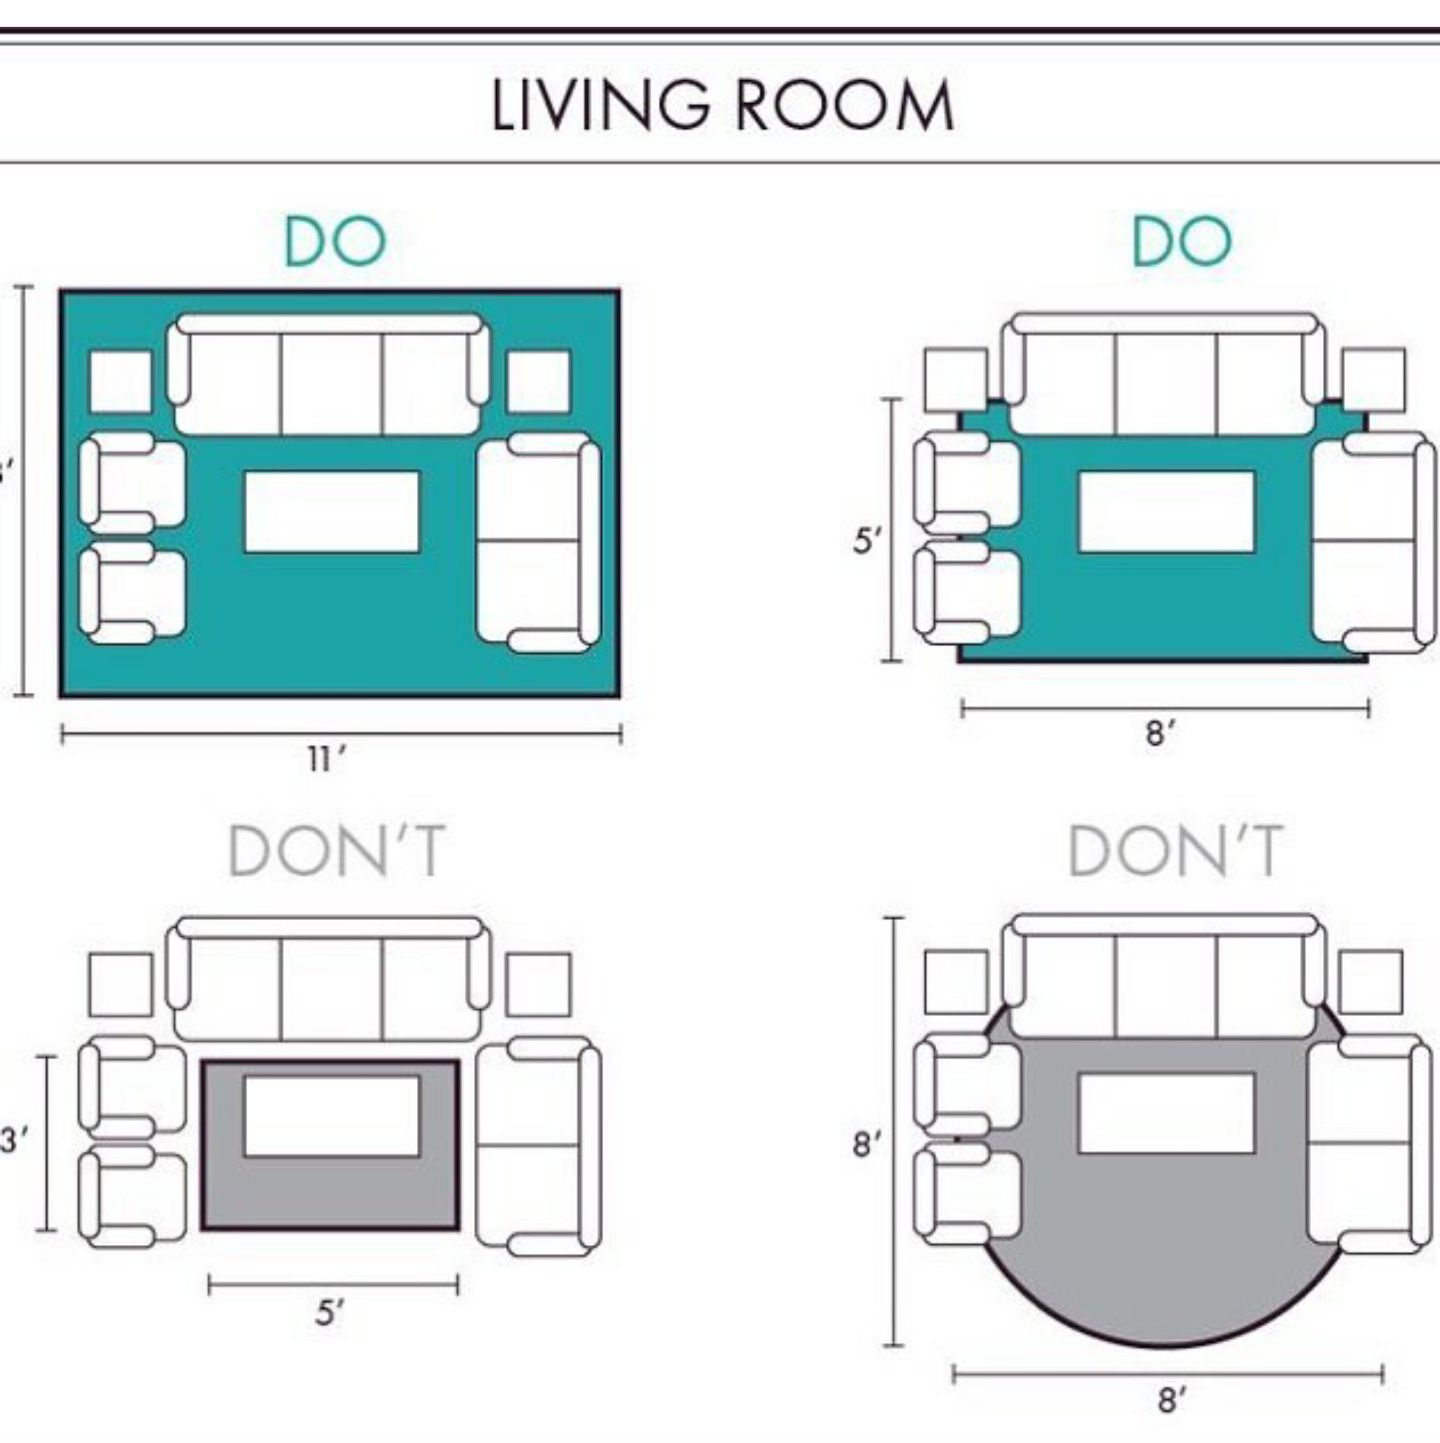 Easy and small changes to transform a room   Dream of Home